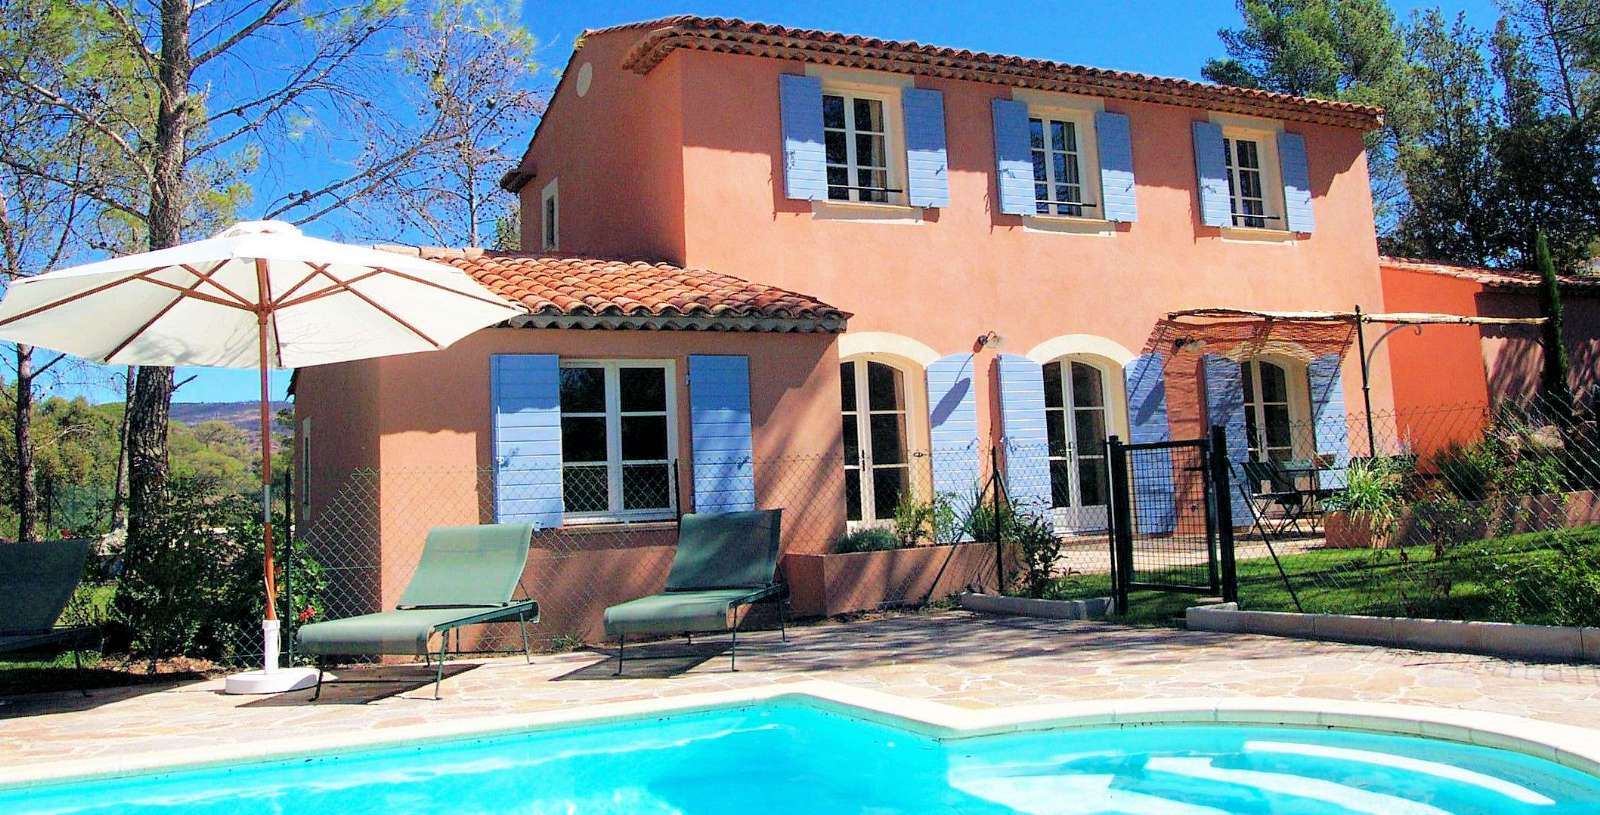 <a href=http://www.in-france.dk/frankrig/provence-alpes-cote-dazur/la-motte/les-villas-de-saint-endreol/>Villa med privat pool</a>